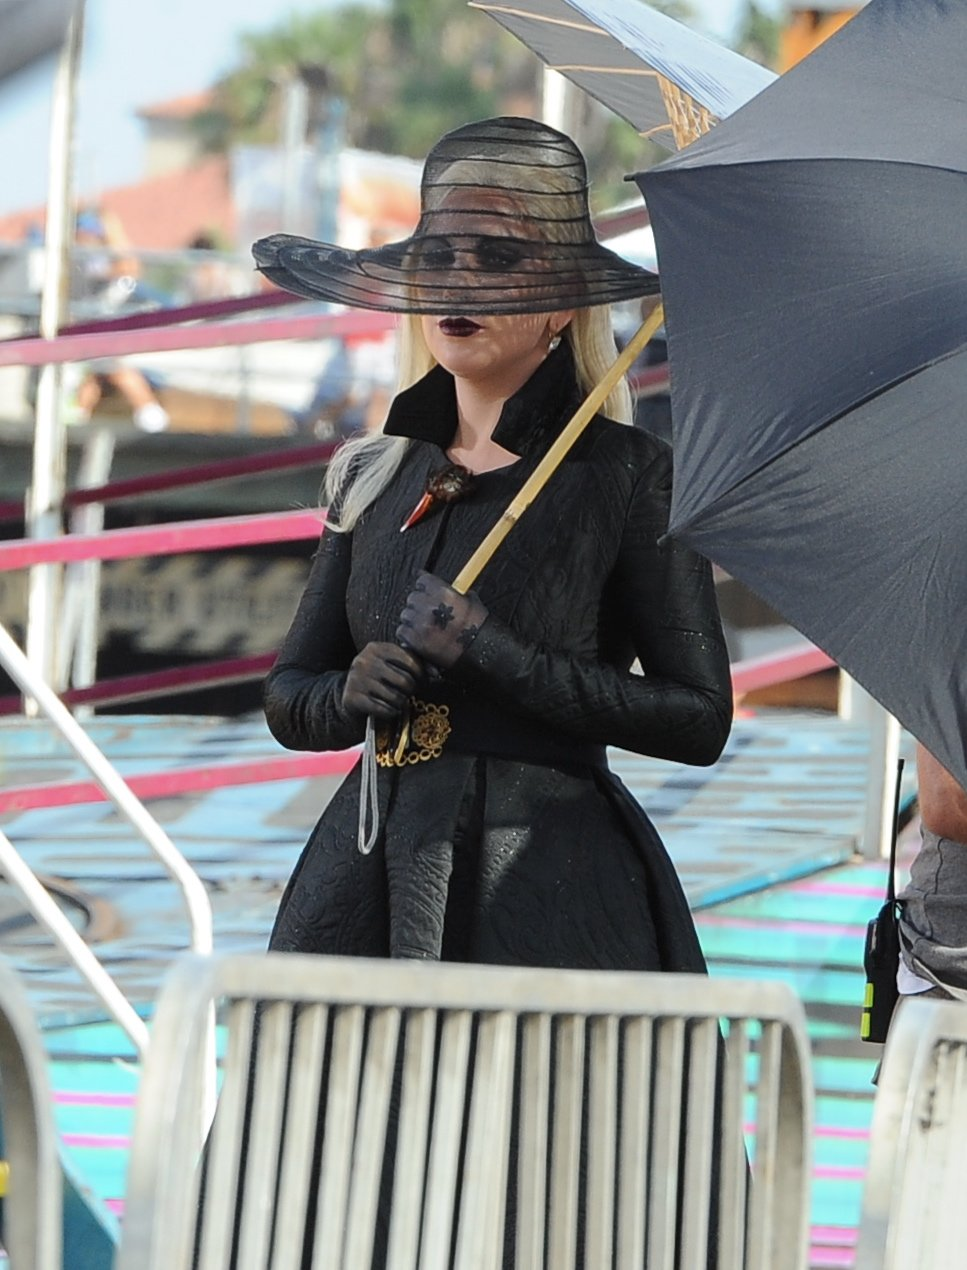 """Countness Lady Gaga dress in all black for a beach carnival scene in Santa Monica for """"American Horror Story Hotel"""" with co star Wes Bentley. The singer walk around the sand with black heels in a scorching hot day but had help with umbrellas and water fan for the crew.  Featuring: Lady Gaga Where: Santa Monica, California, United States When: 10 Sep 2015 Credit: Cousart/JFXimages/WENN.com Countness Lady Gaga dress in all black for a beach carnival scene in Santa Monica for """"American Horror Story Hotel"""" with co star Wes Bentley. The singer walk around the sand with black heels in a scorching hot day but had help with umbrellas and water fan for the crew.  Featuring: Lady Gaga Where: Santa Monica, California, United States When: 10 Sep 2015 Credit: Cousart/JFXimages/WENN.com"""